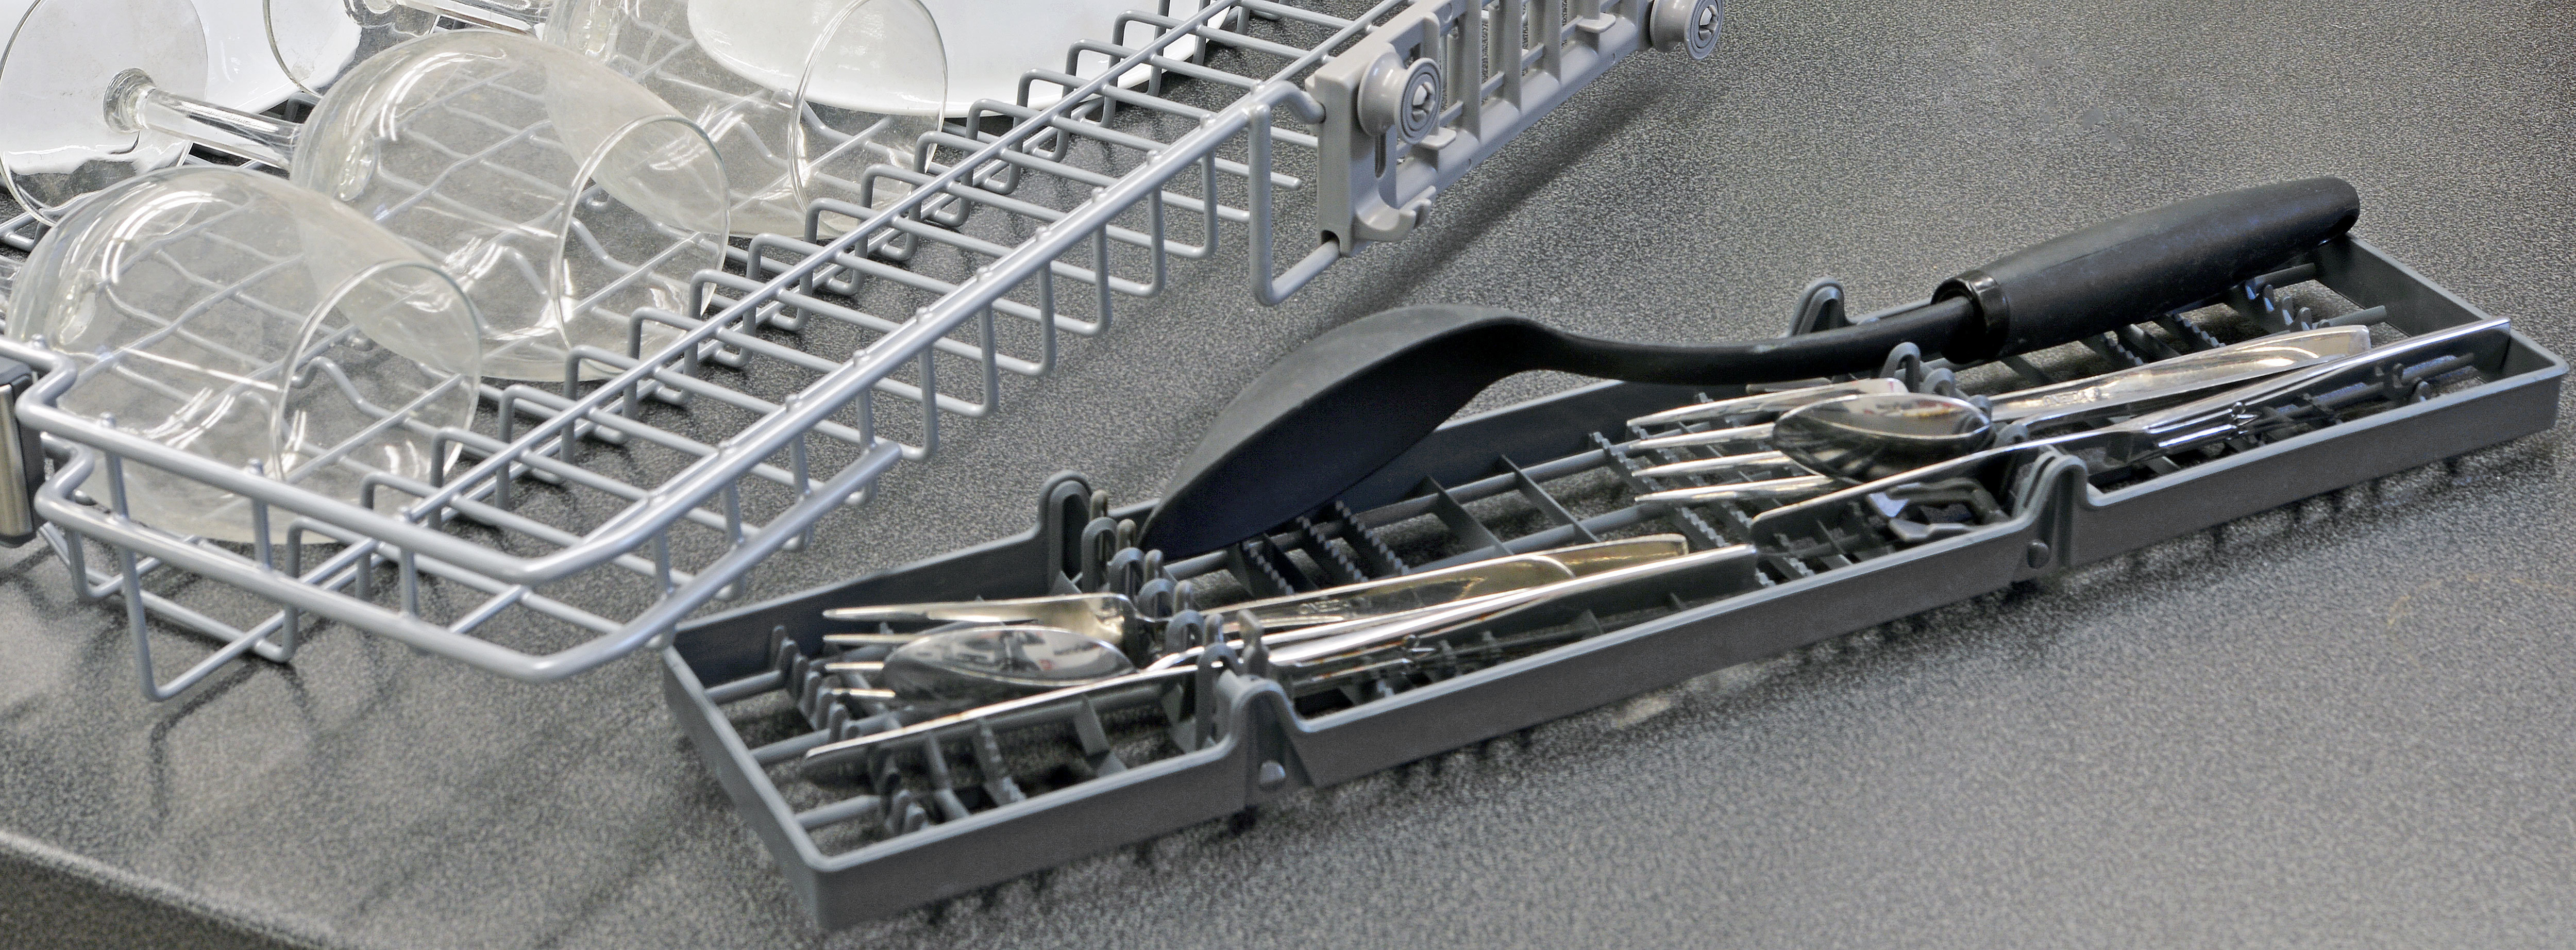 In fact, the silverware tray is a removable piece which also has two rows of folding tines to make it easier for loading large items like spatulas and serving spoons.